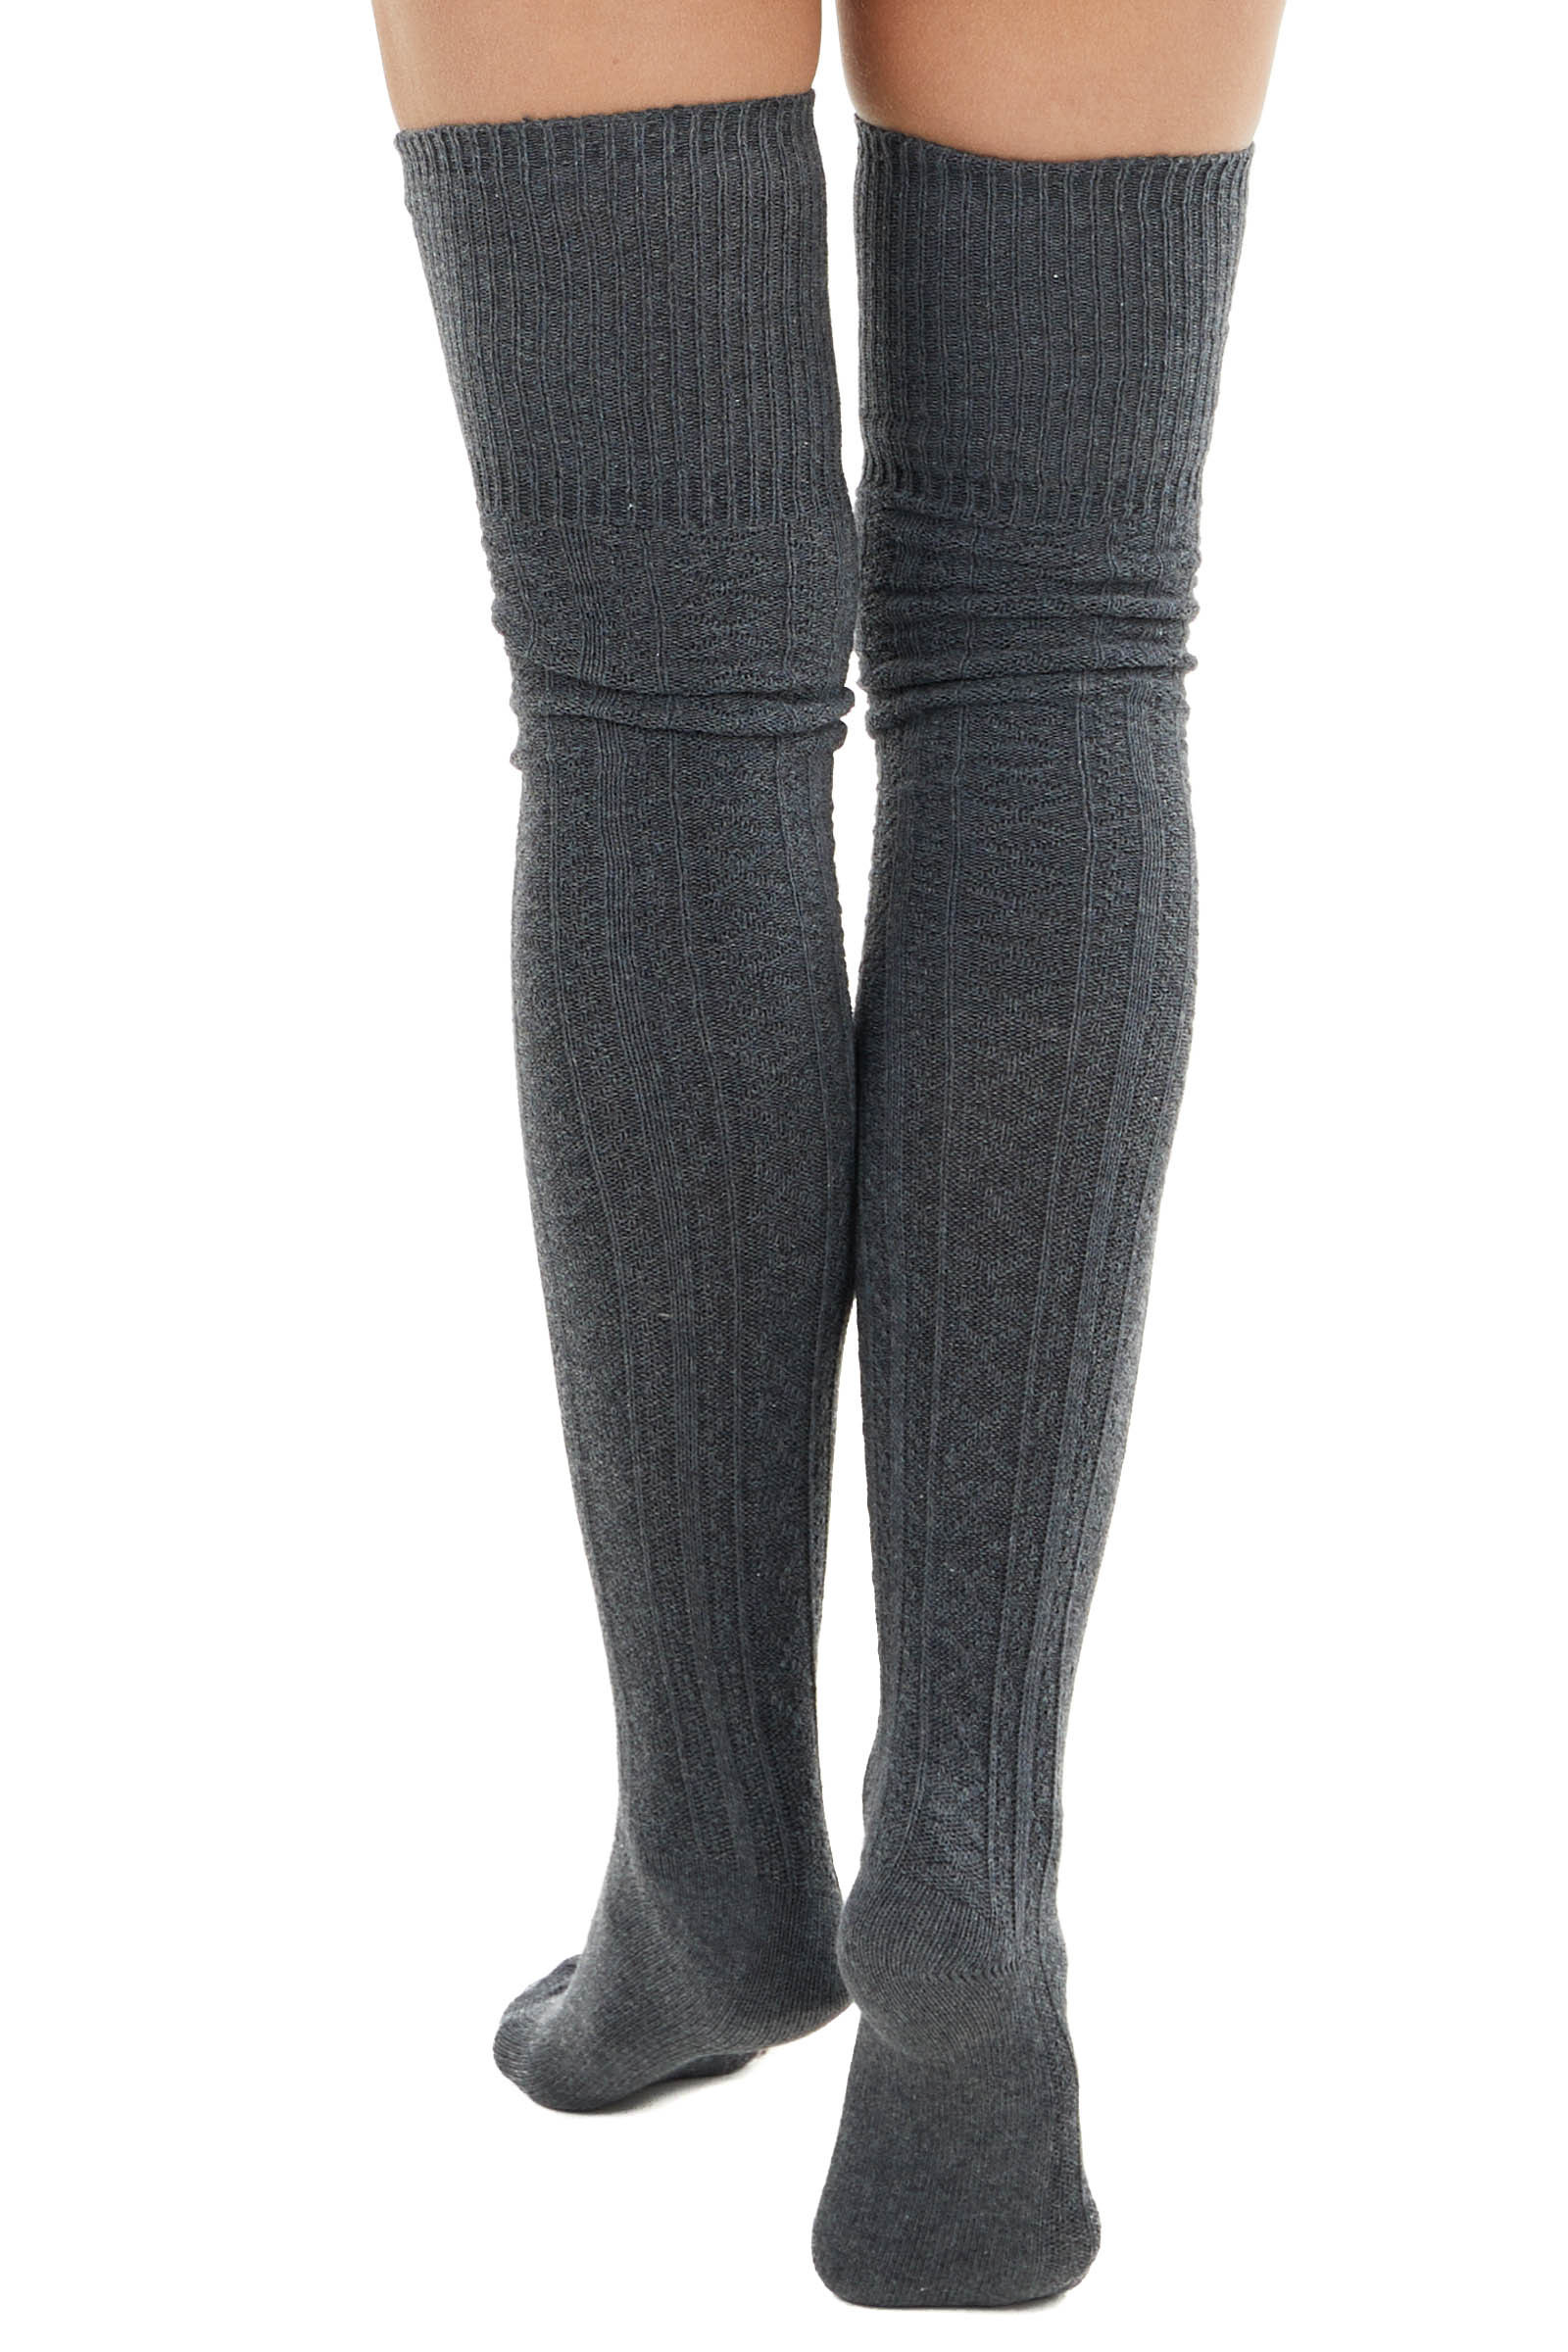 Charcoal Small Cable Knit Over the Knee High Fashion Socks